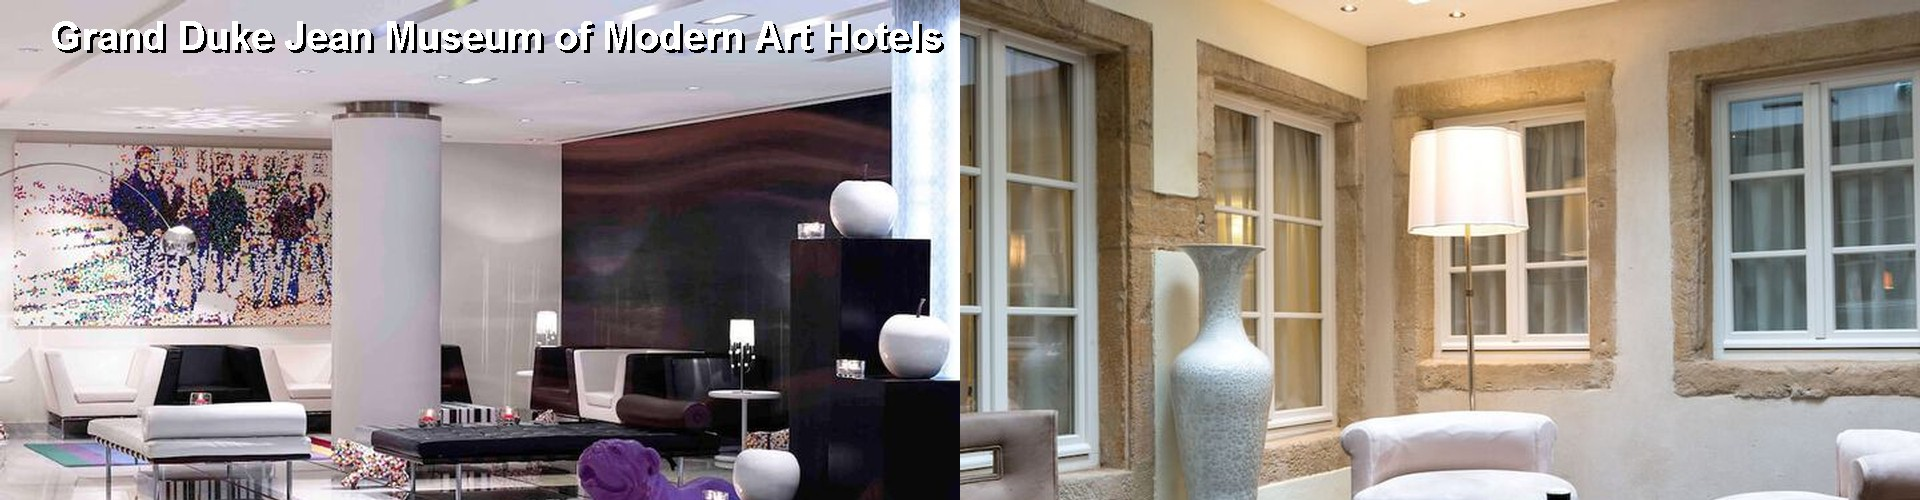 5 Best Hotels near Grand Duke Jean Museum of Modern Art